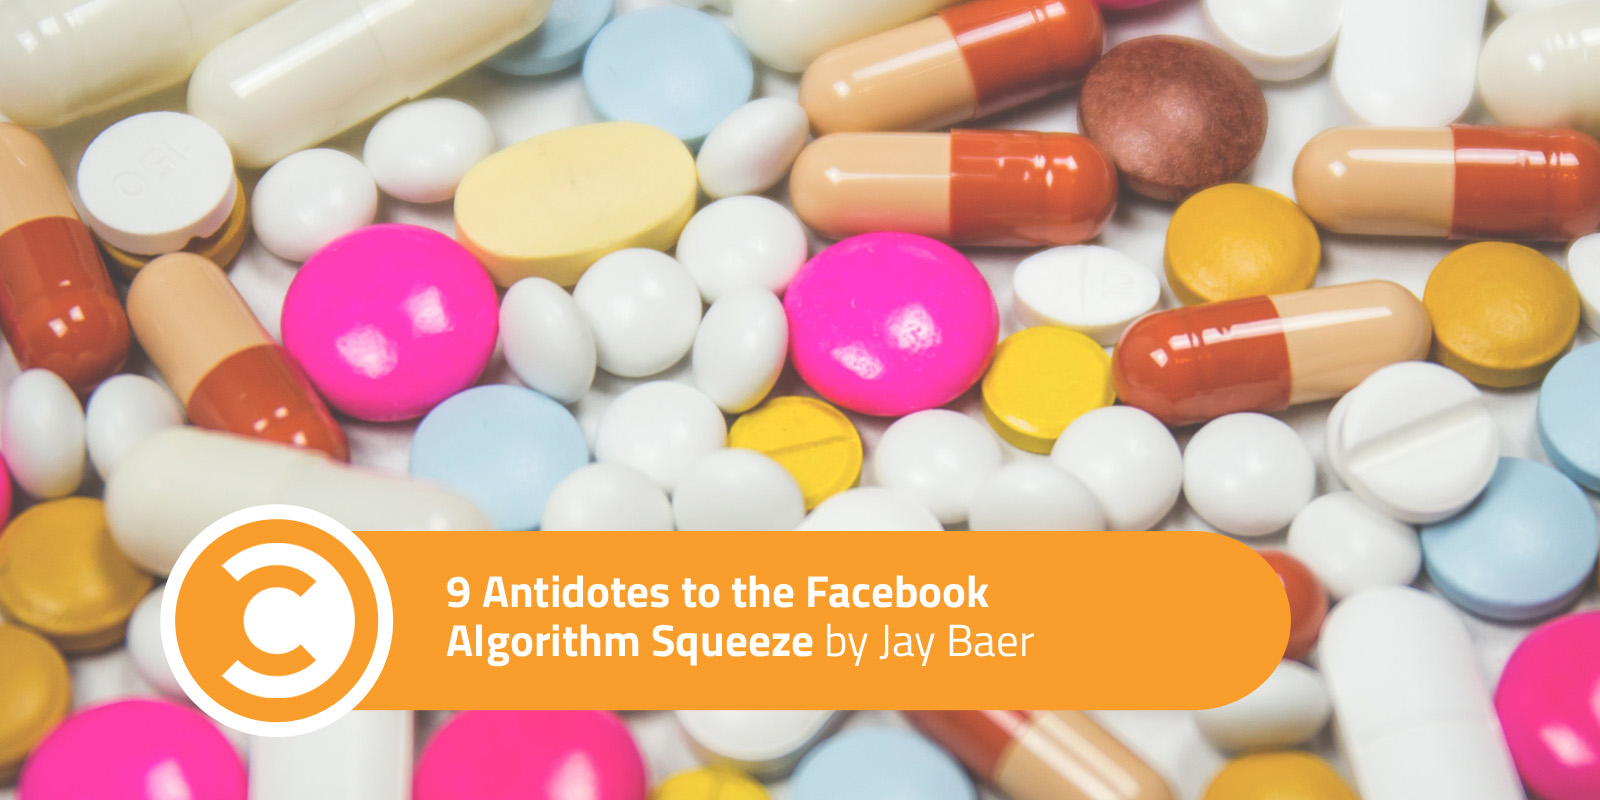 9 Antidotes to the Facebook Algorithm Squeeze